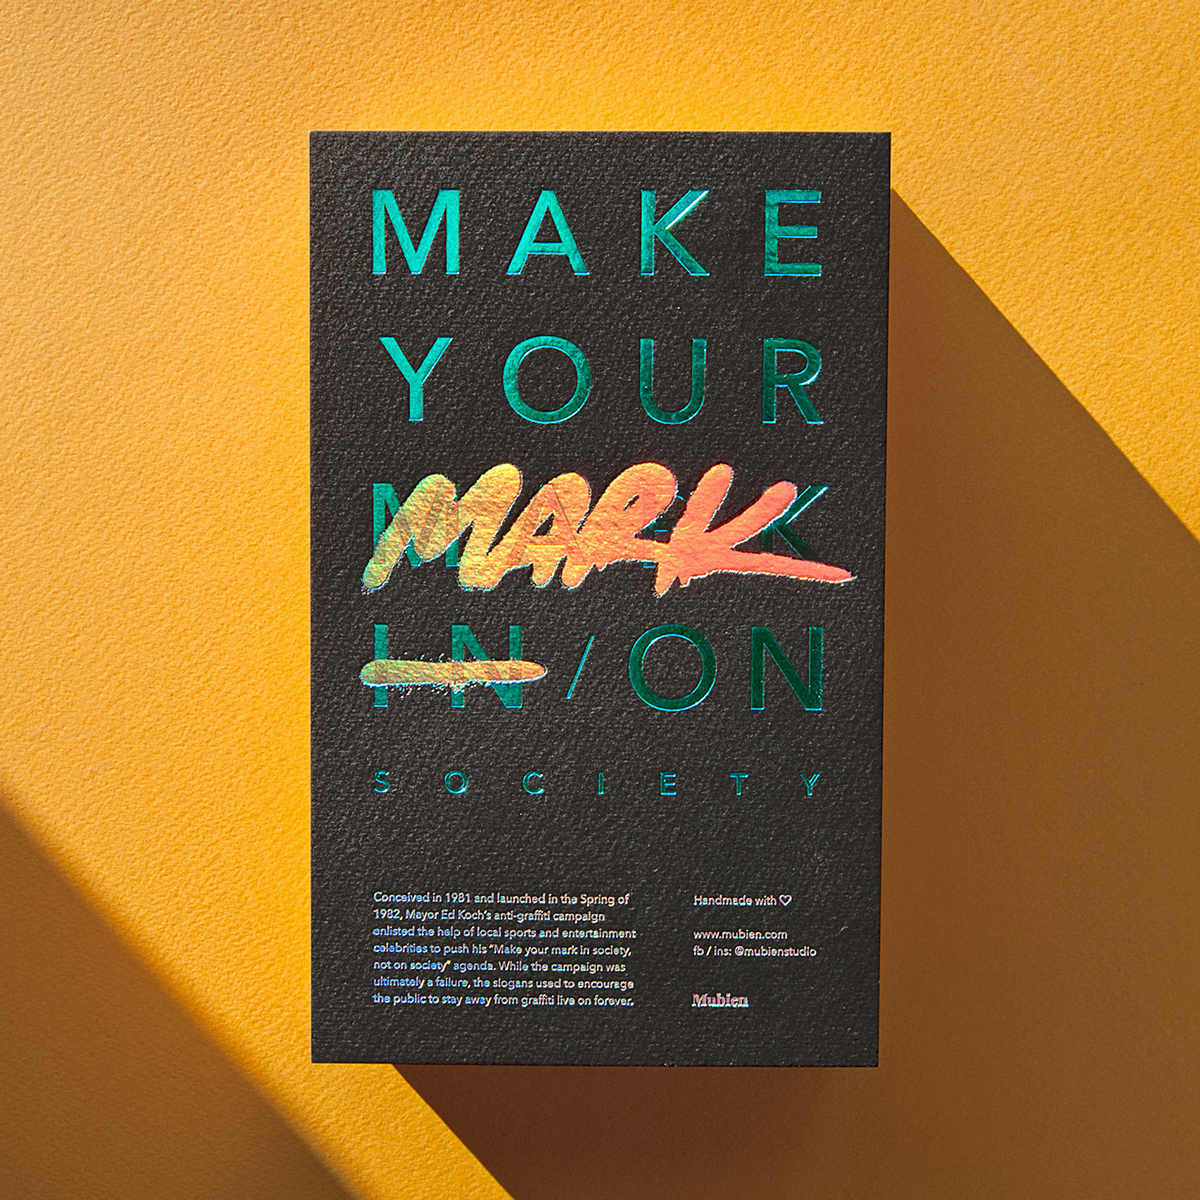 Make your mark on society